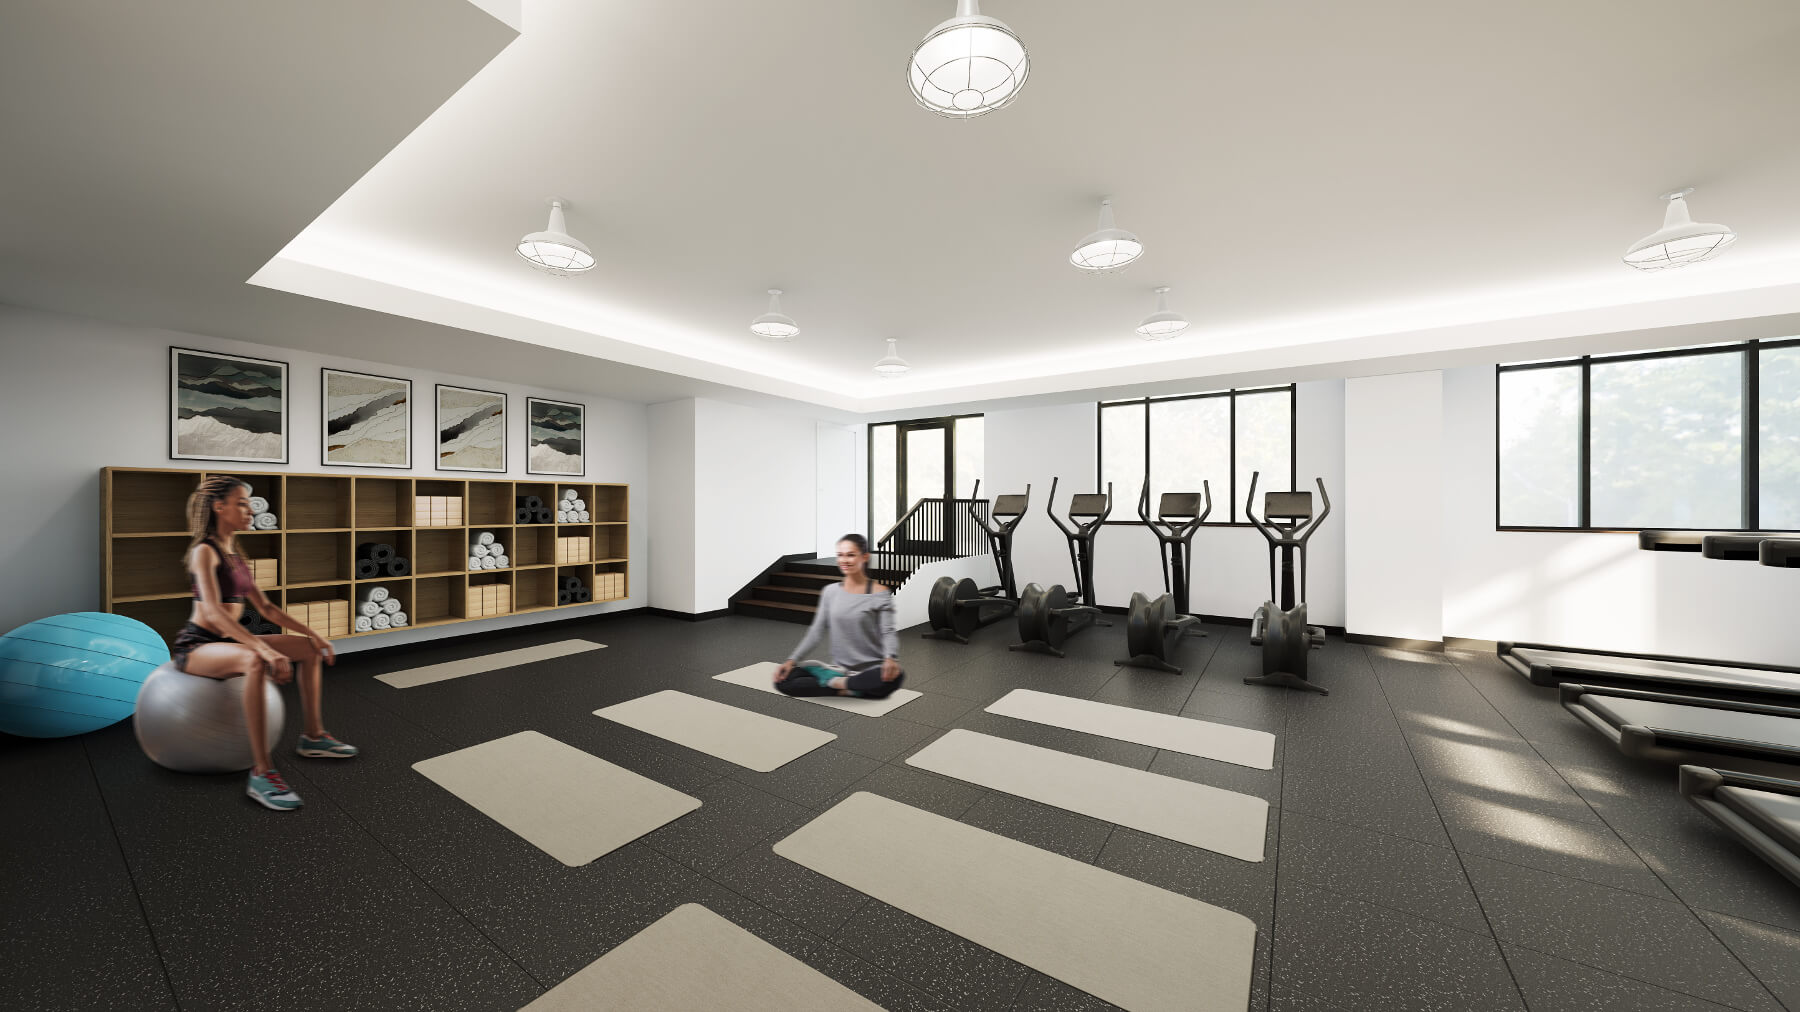 A state-of-the-art health and fitness center is equipped to support everything from mat workouts to strength training to cardio sessions.